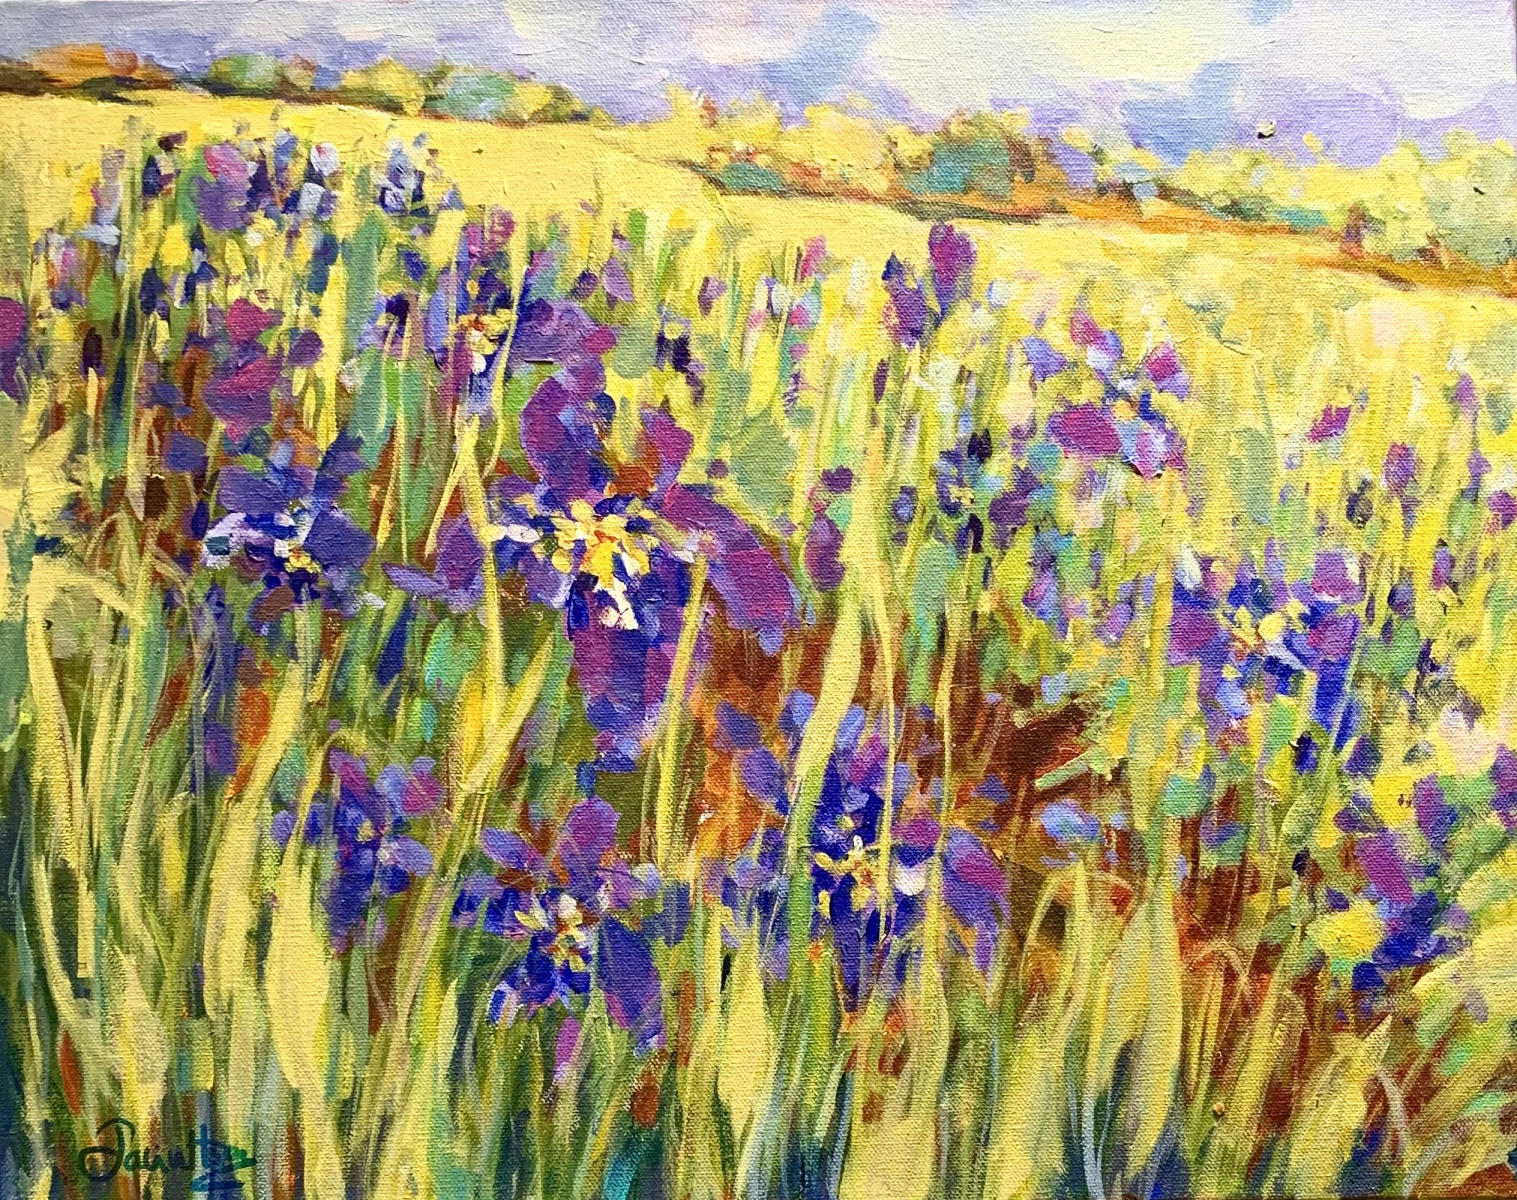 FIELDS OF IRIS